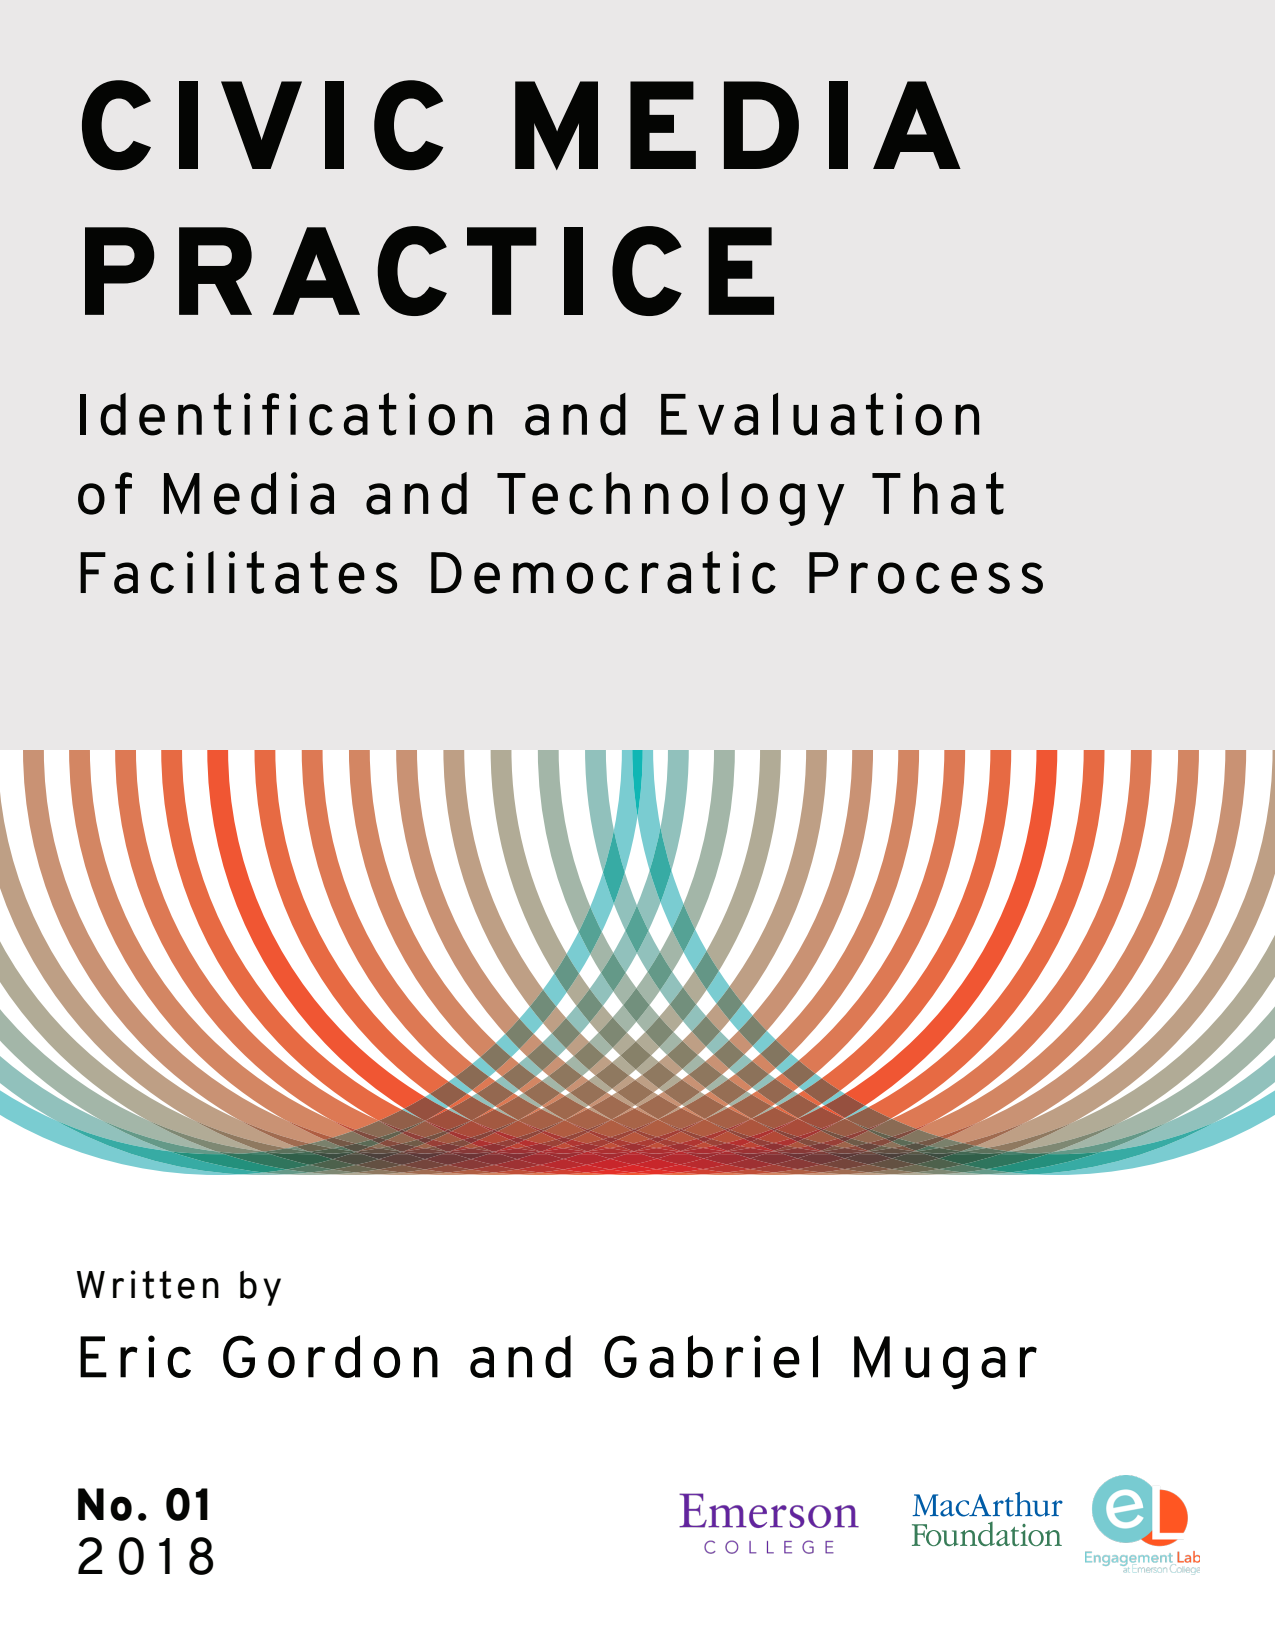 Civic Media Practice - Identification and Evaluation of Media and Technology That Facilitates Democratic Process